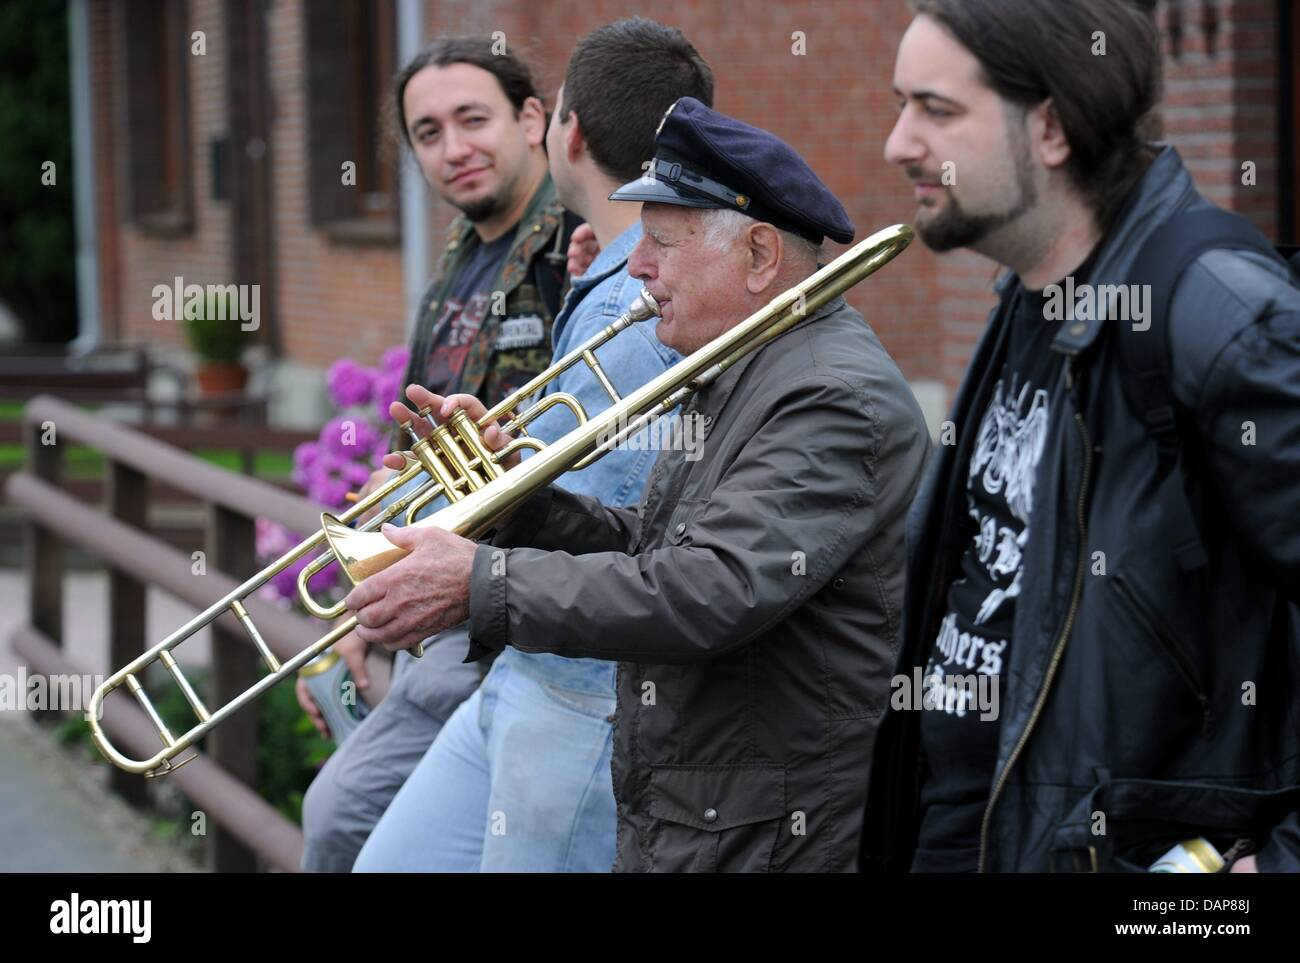 Opa Willi serenades arriving heavy metal fans in Wacken,Germany, 01 August 2011. More than 75,000 visiters - Stock Image